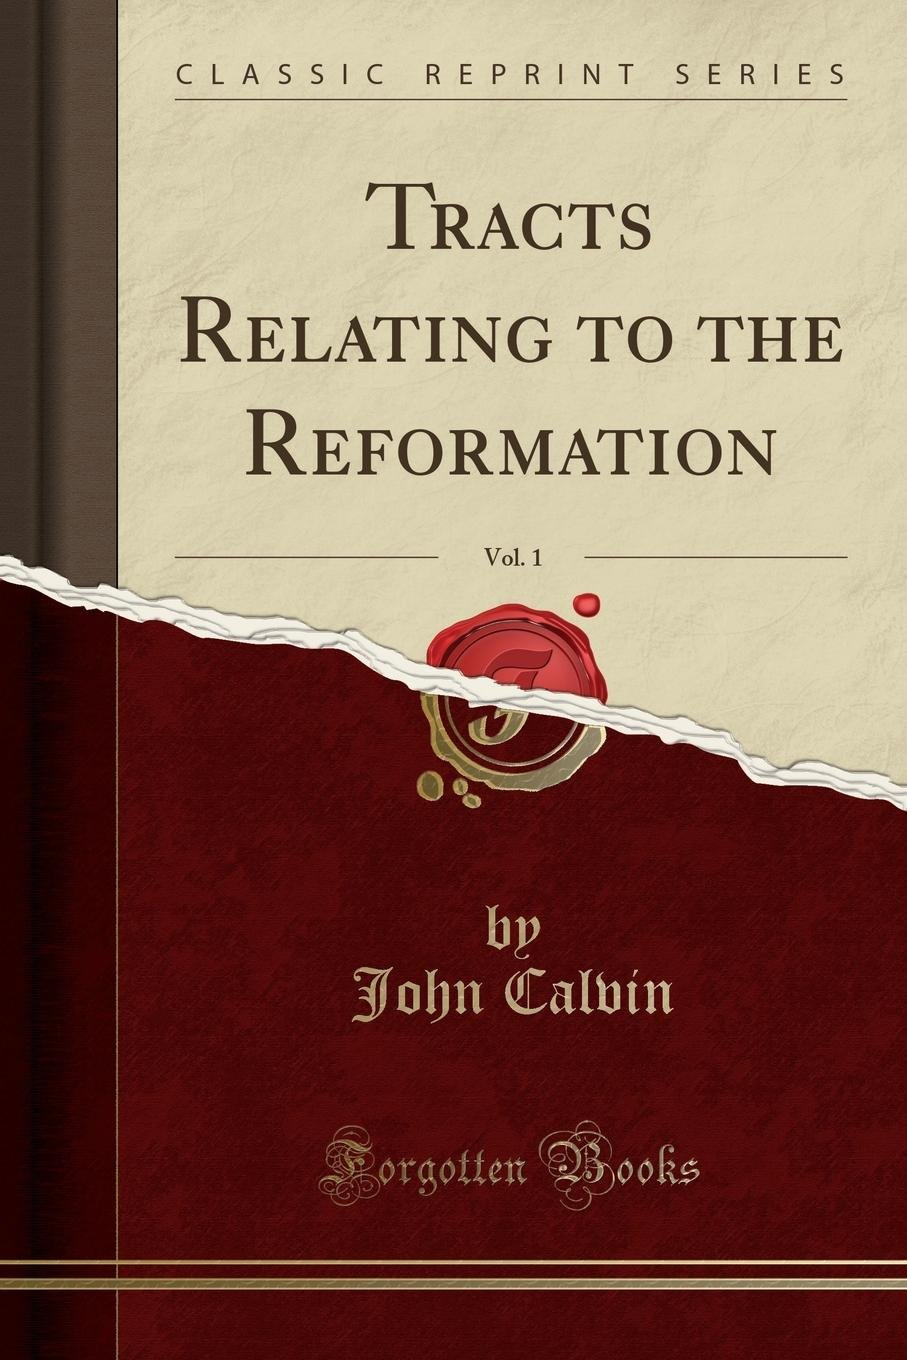 Tracts Relating to the Reformation, Vol. 1 (Classic Reprint) ebook